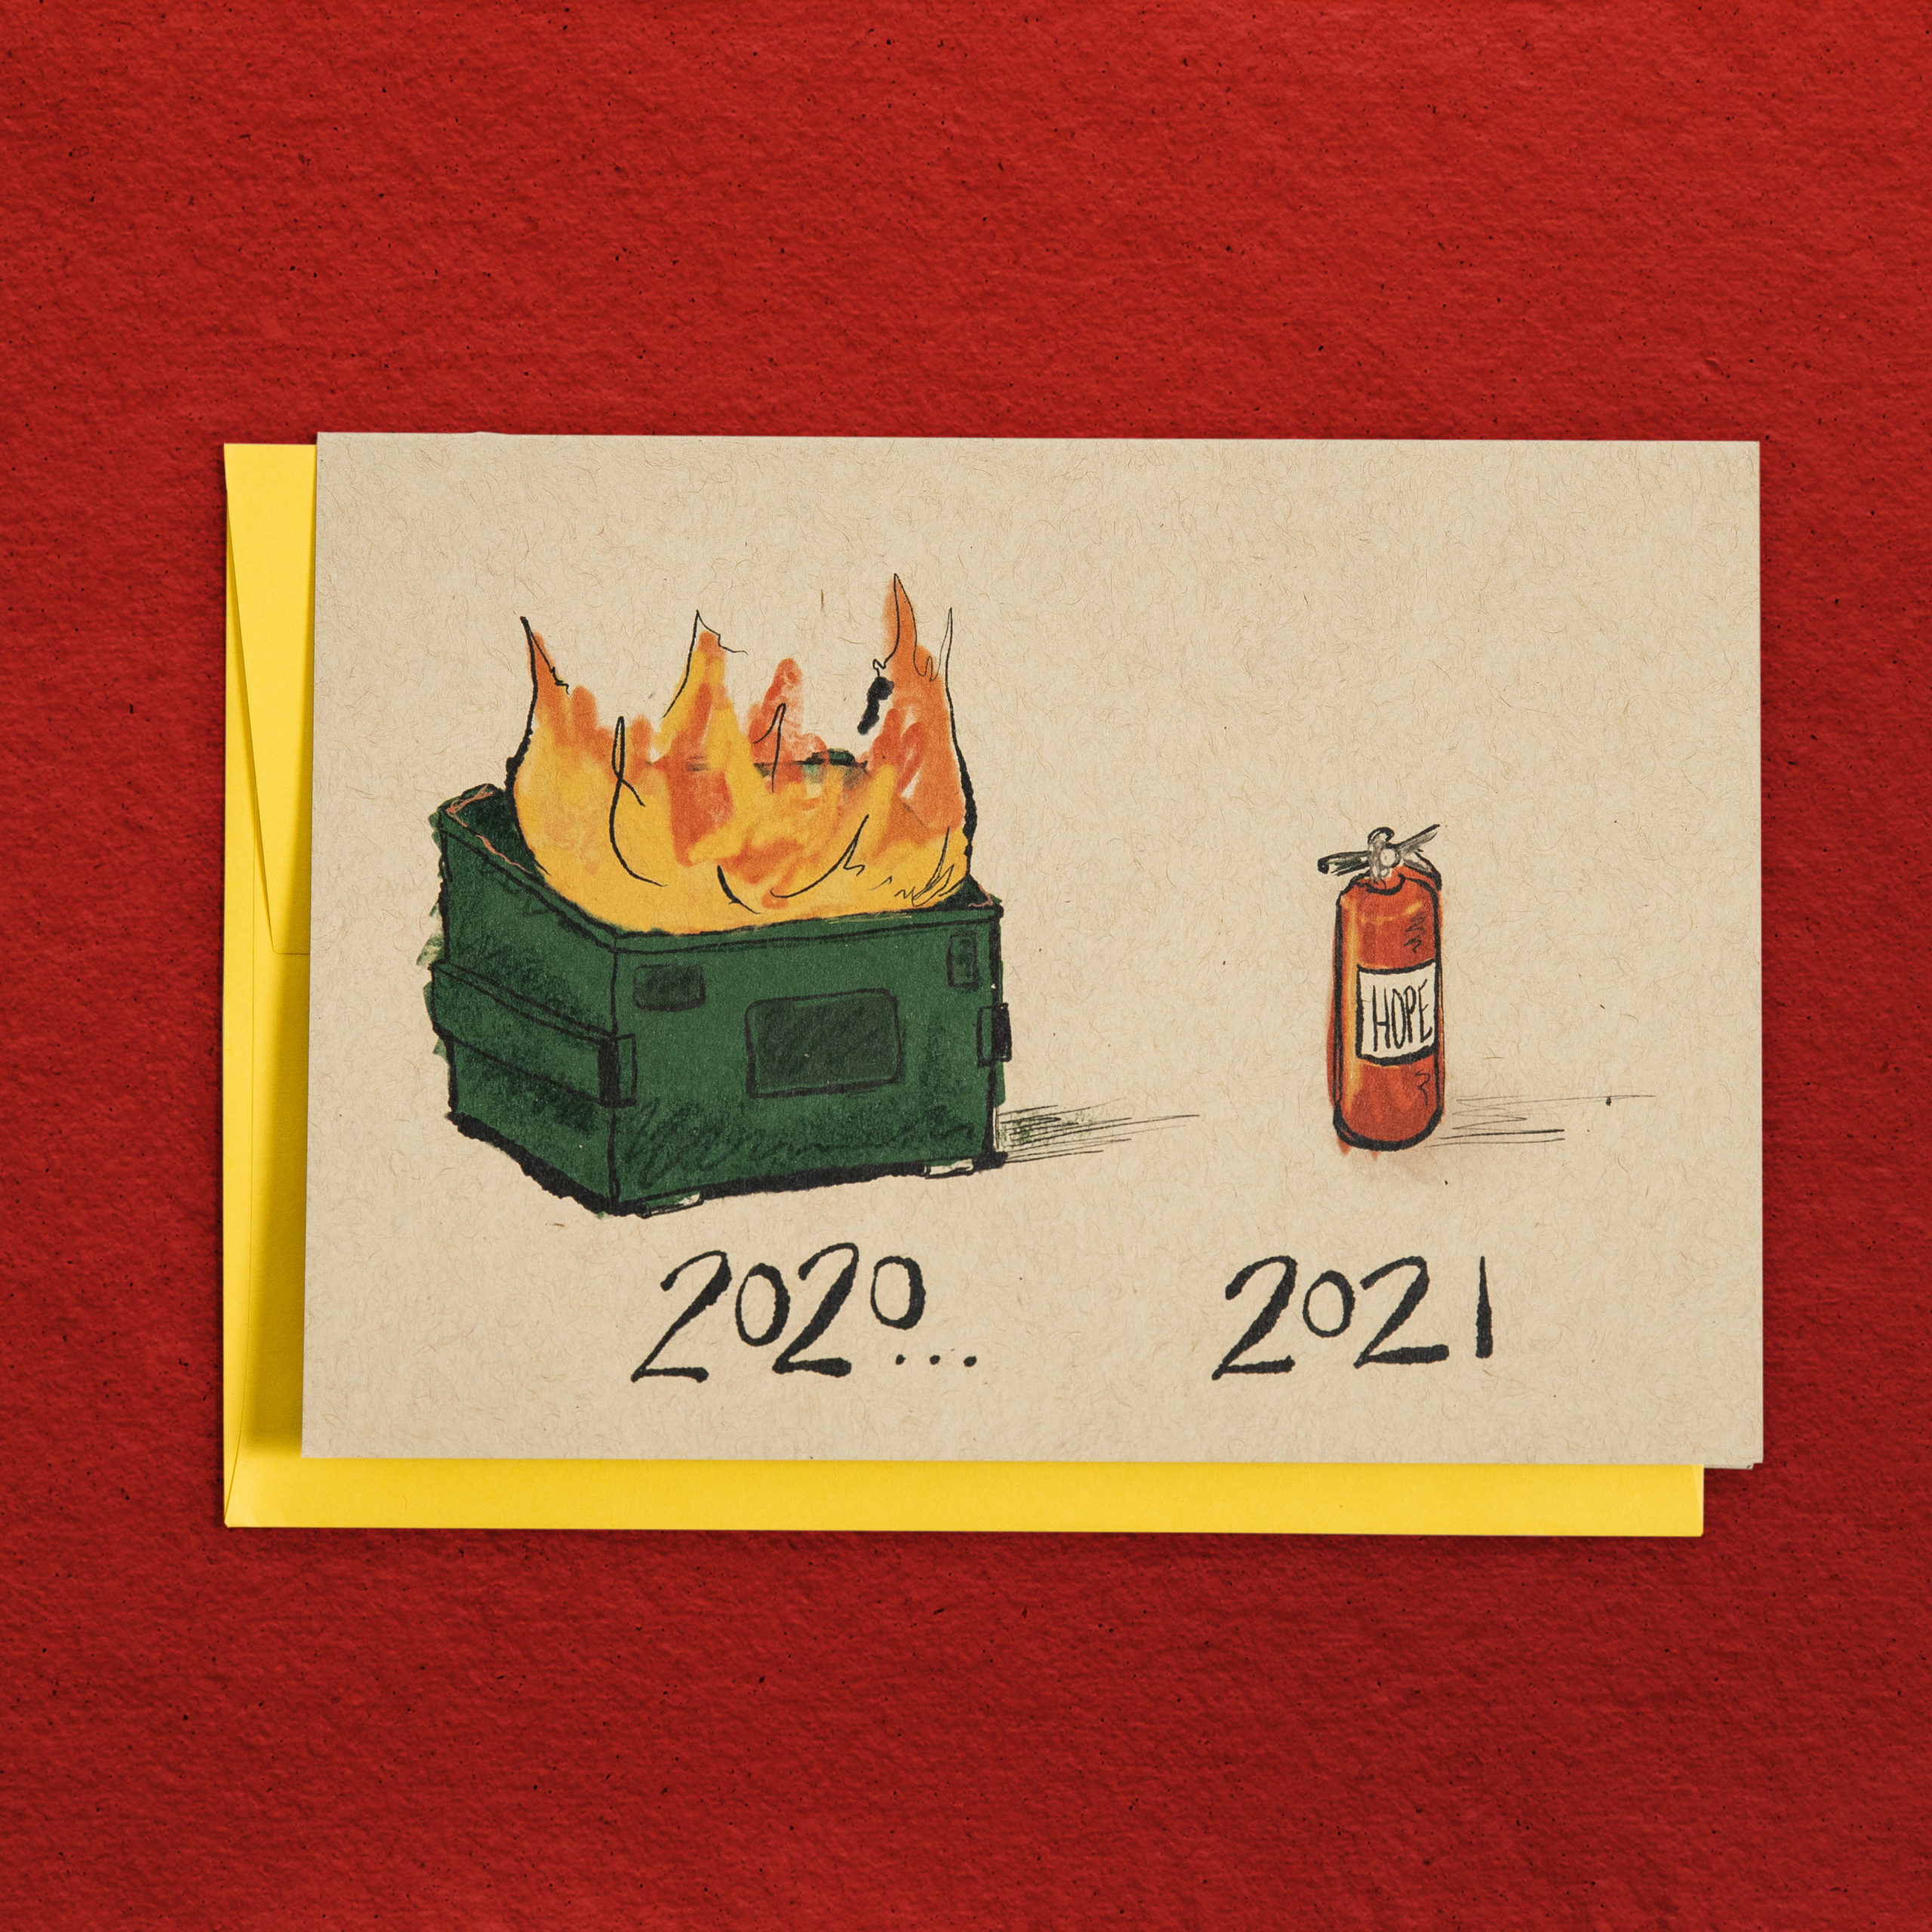 2020/2021 Dumpster Fire New Year's card